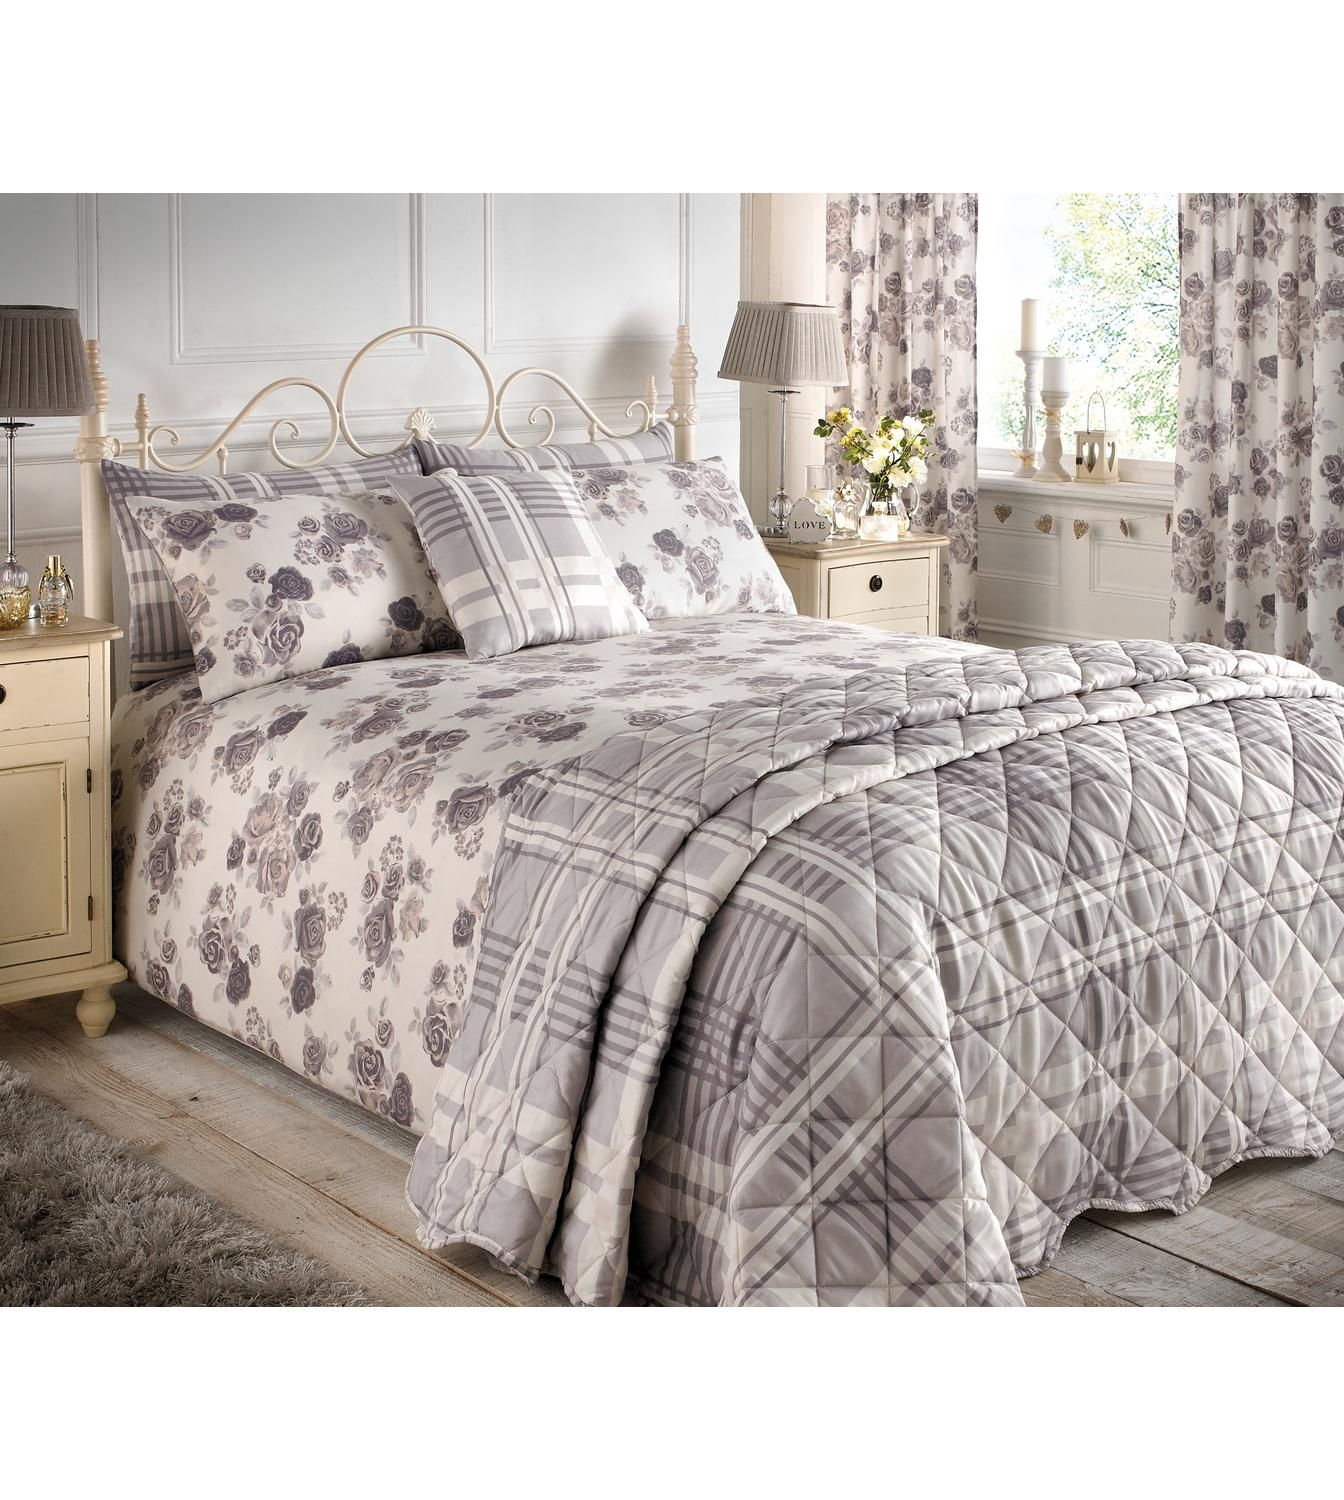 AW17 Studio Romantic Floral Bedding Set & Curtains from